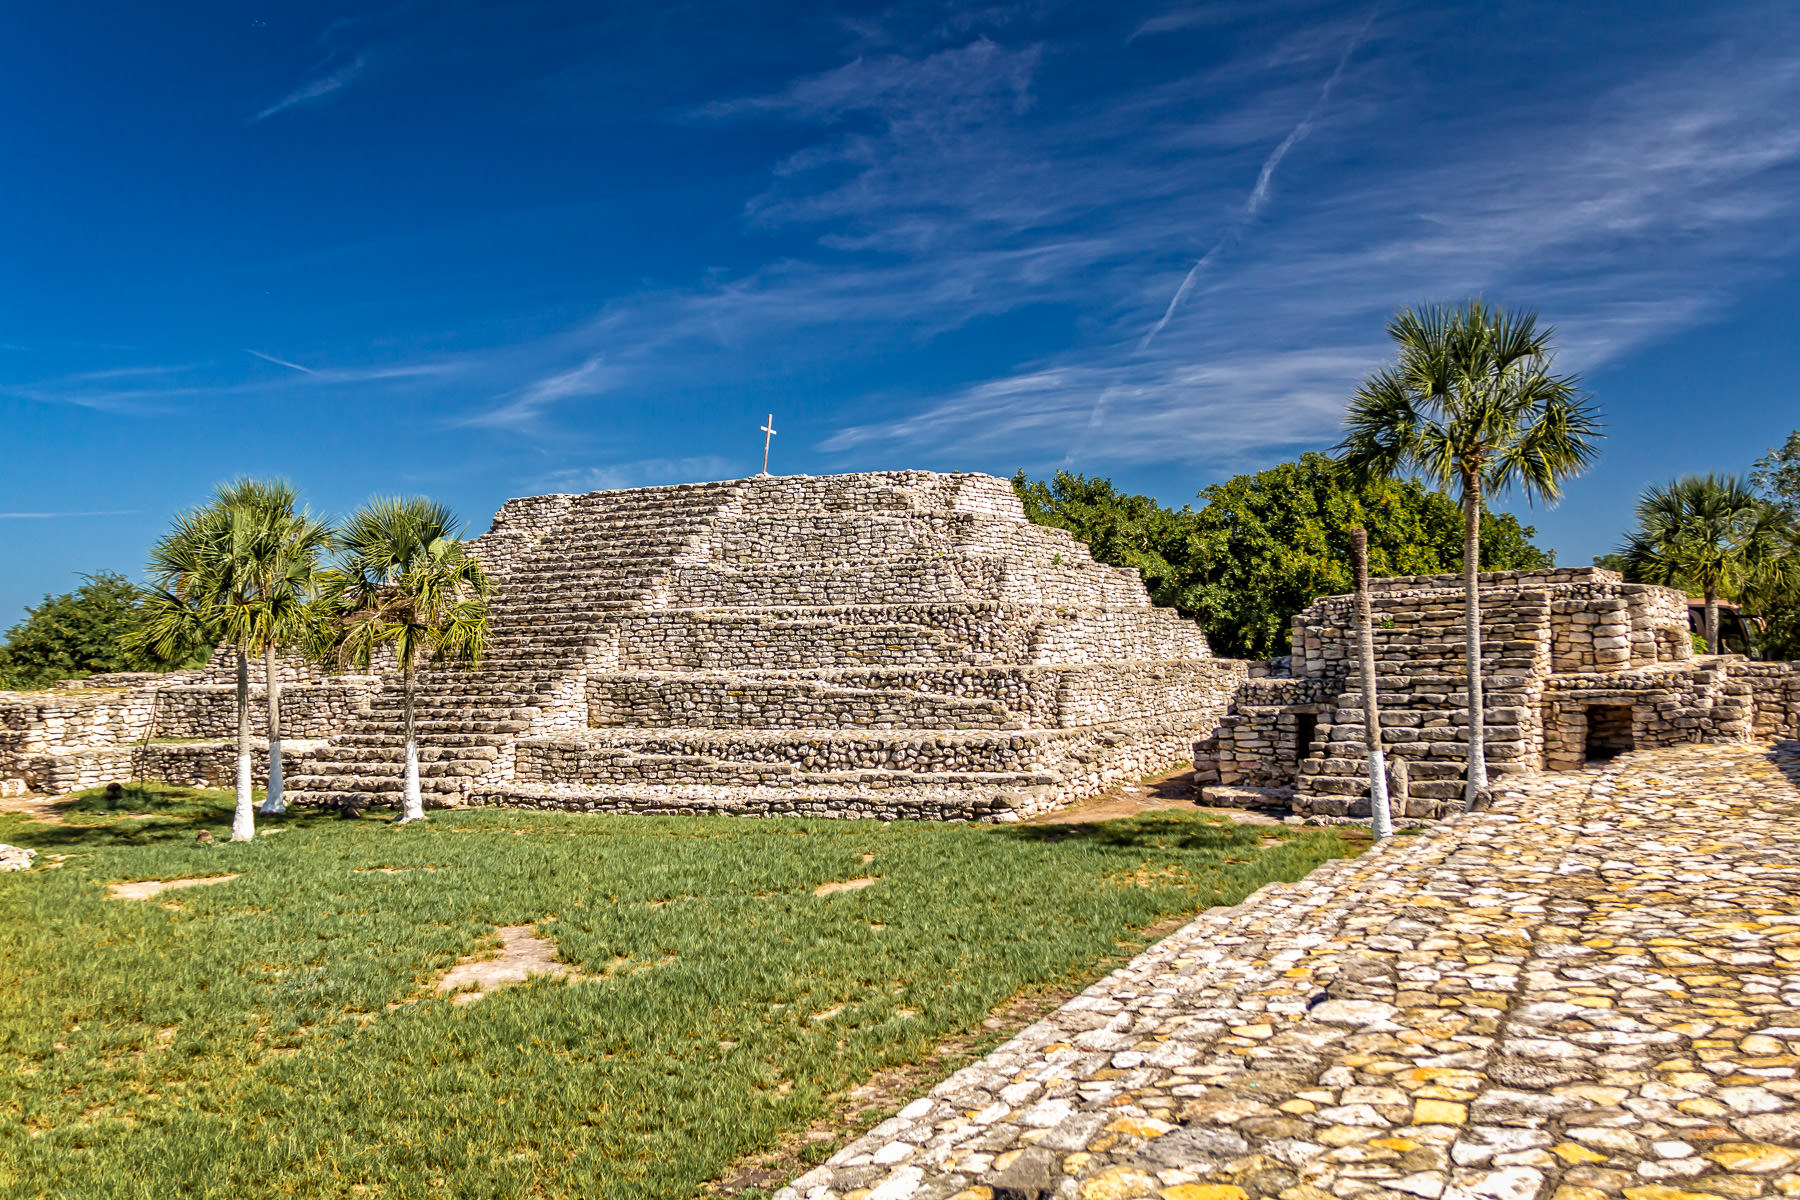 The ancient Mayan pyramid at Xcambo on the Yucatan Peninsula of Mexico.